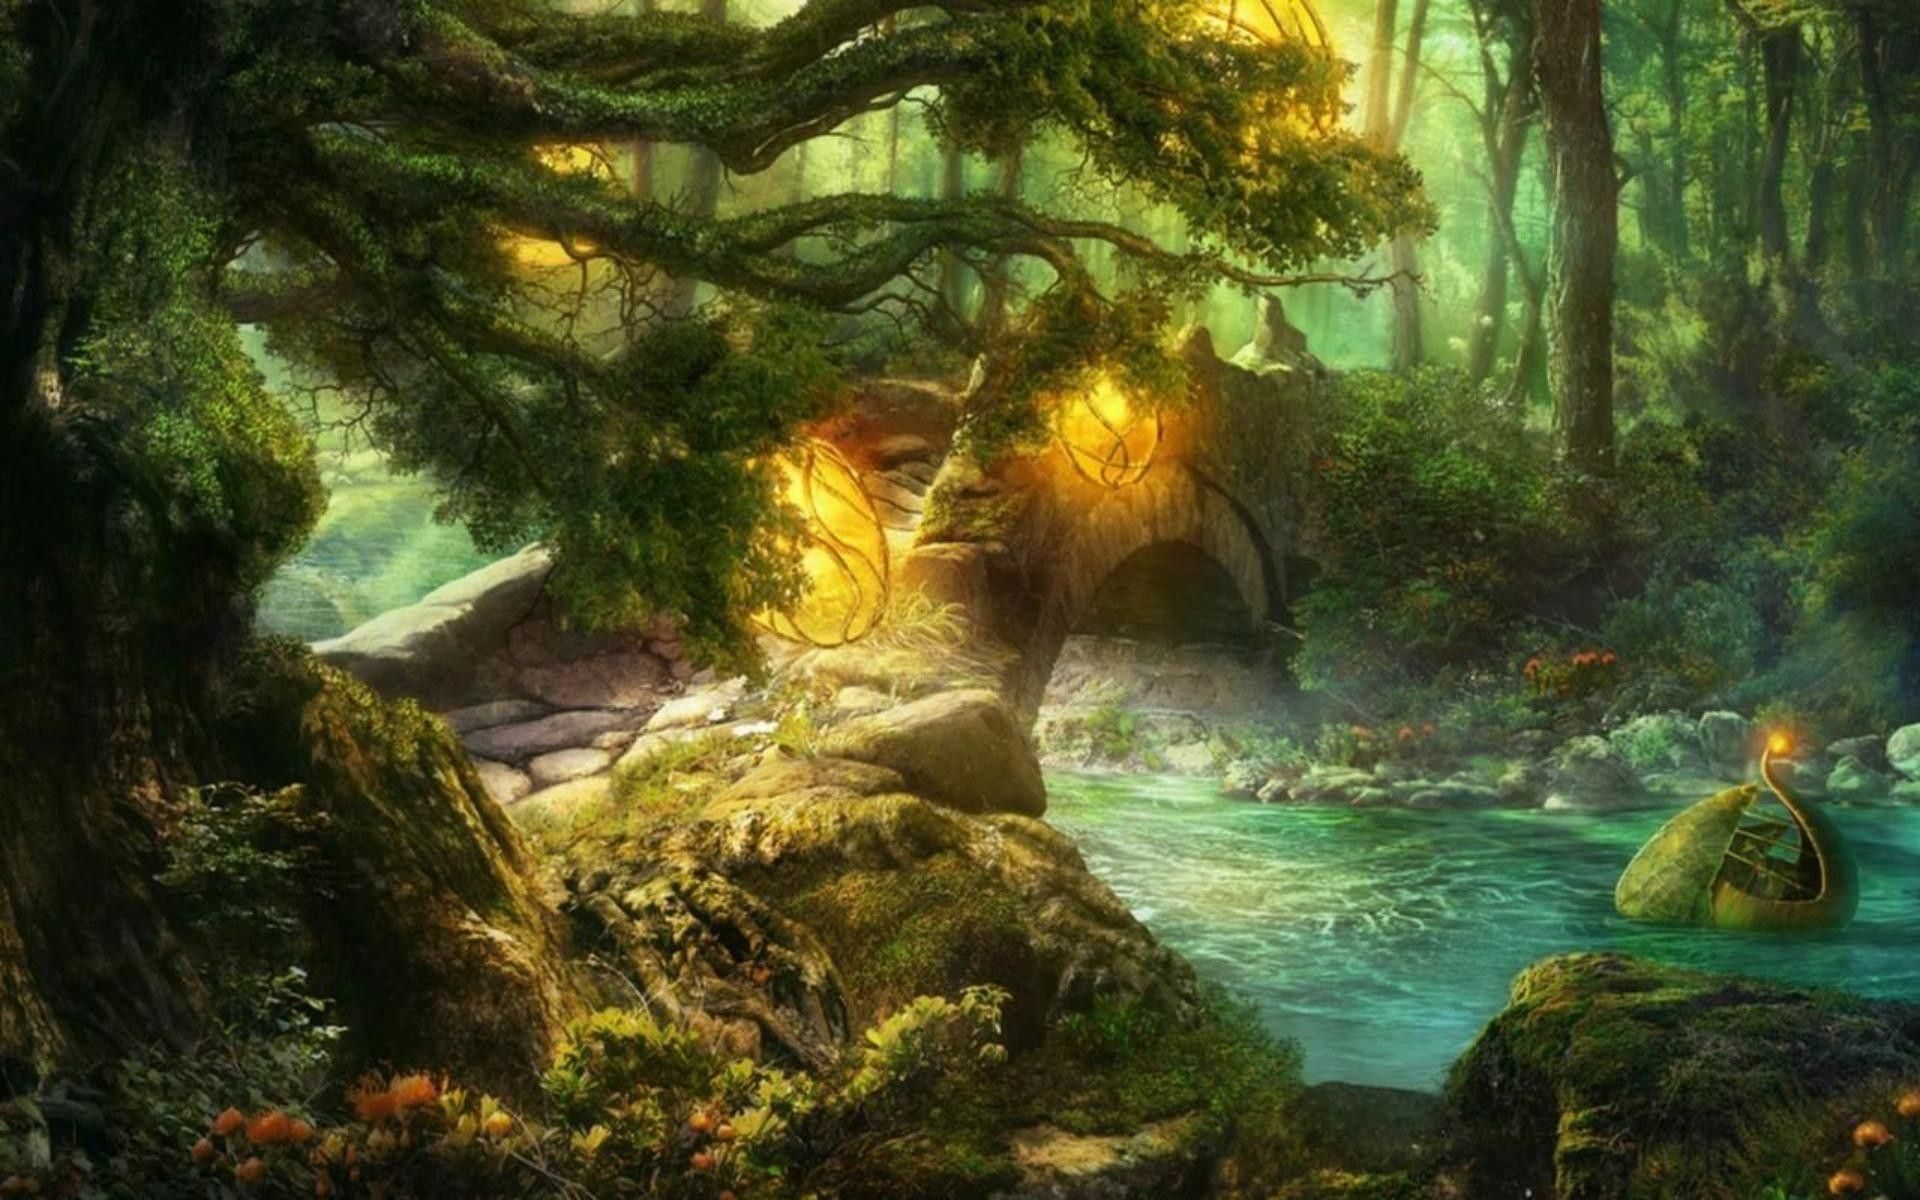 Wallpapers Of Fairytales Fairy Tales Forest Wallpaper Garden Backdrops